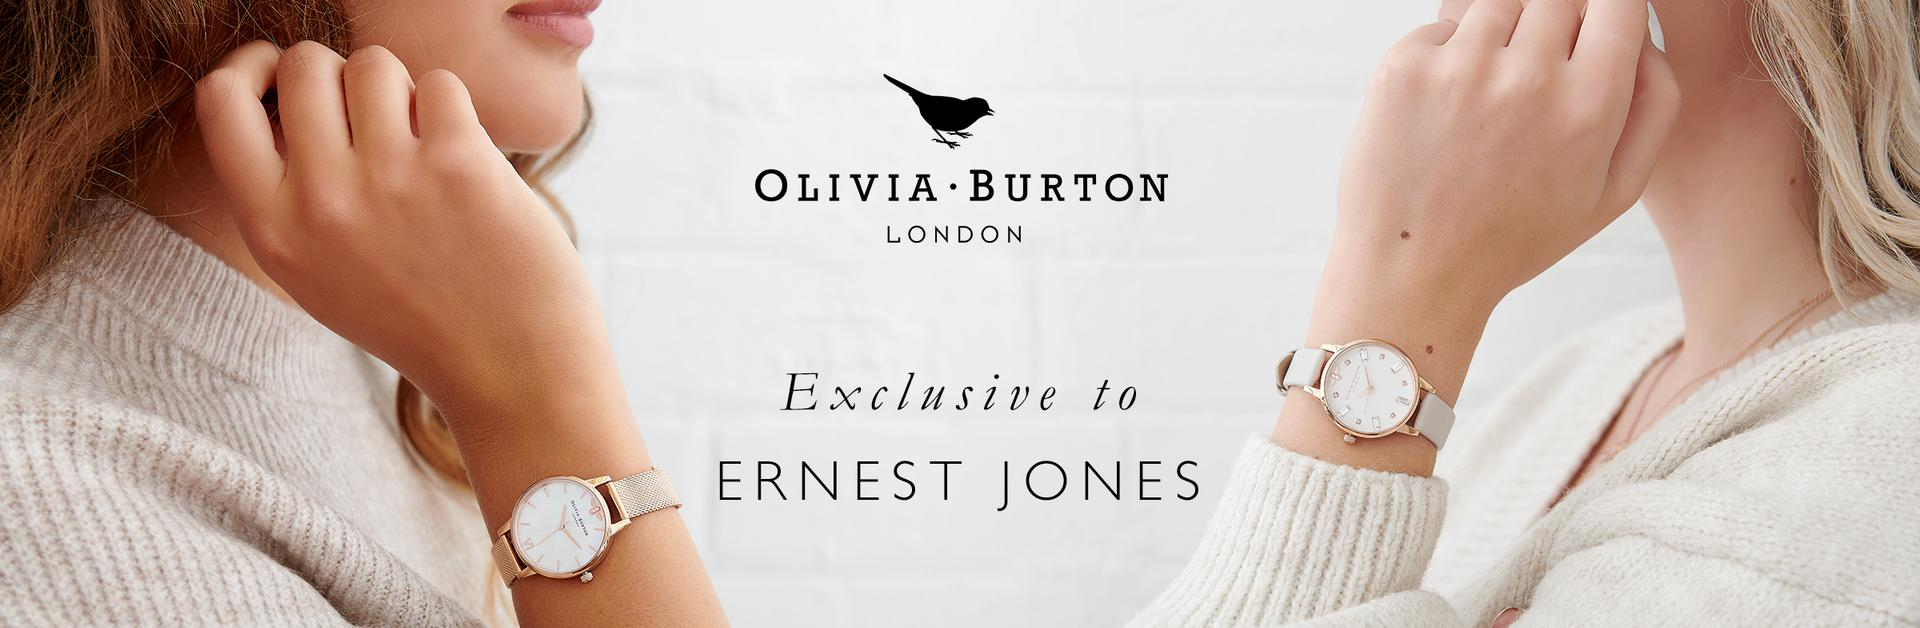 Olivia Burton Exclusive to Ernest Jones